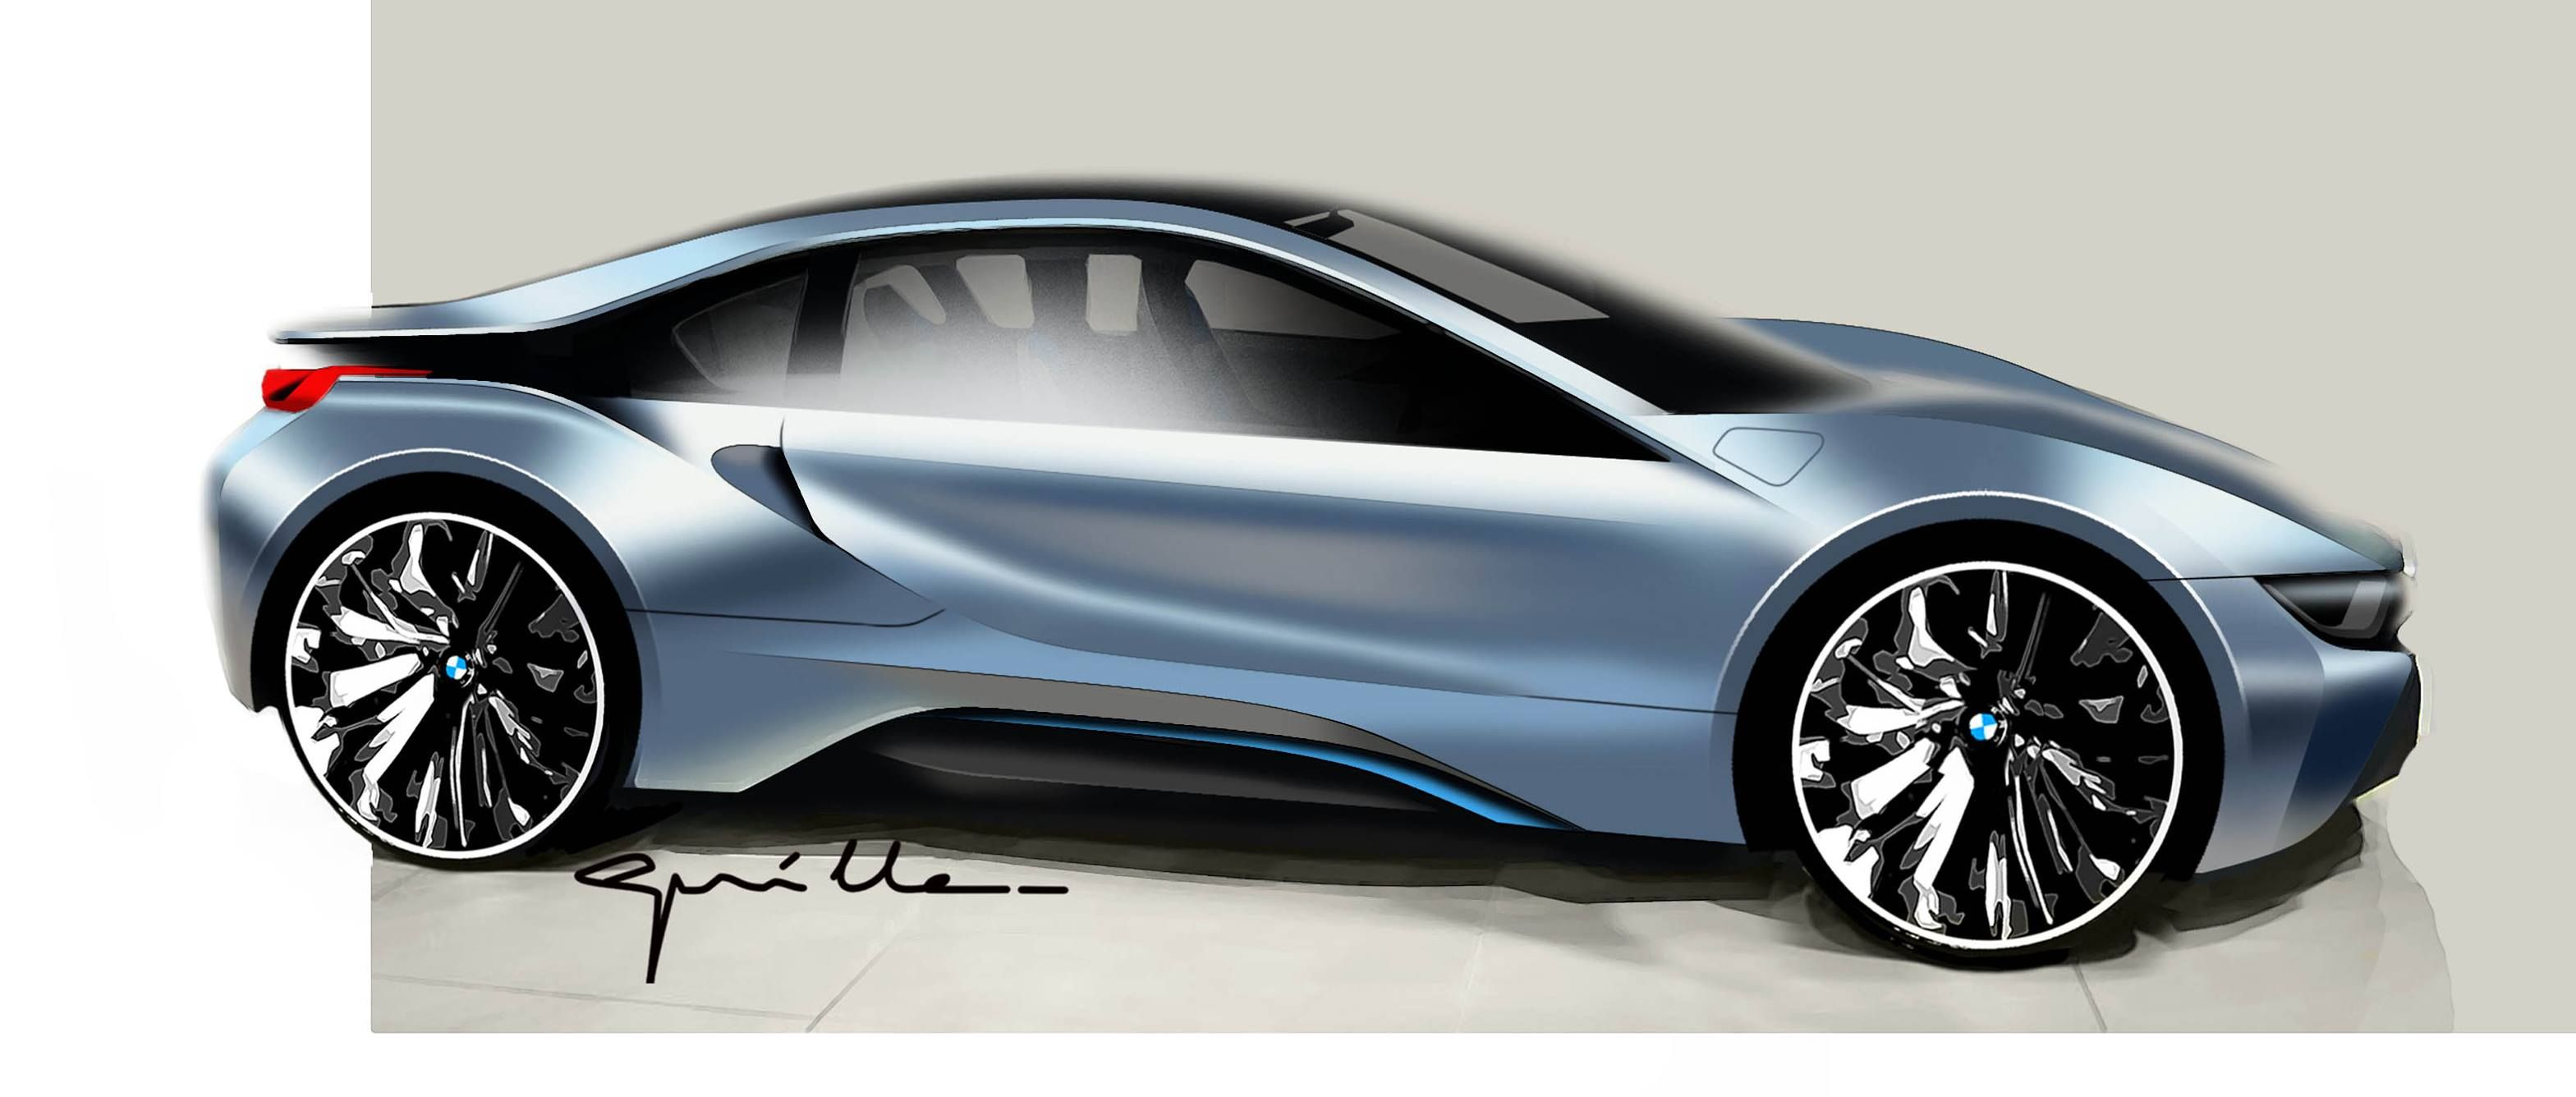 Bmw I8 Sketches Digital Analog Pinterest Bmw I8 Bmw And Cars